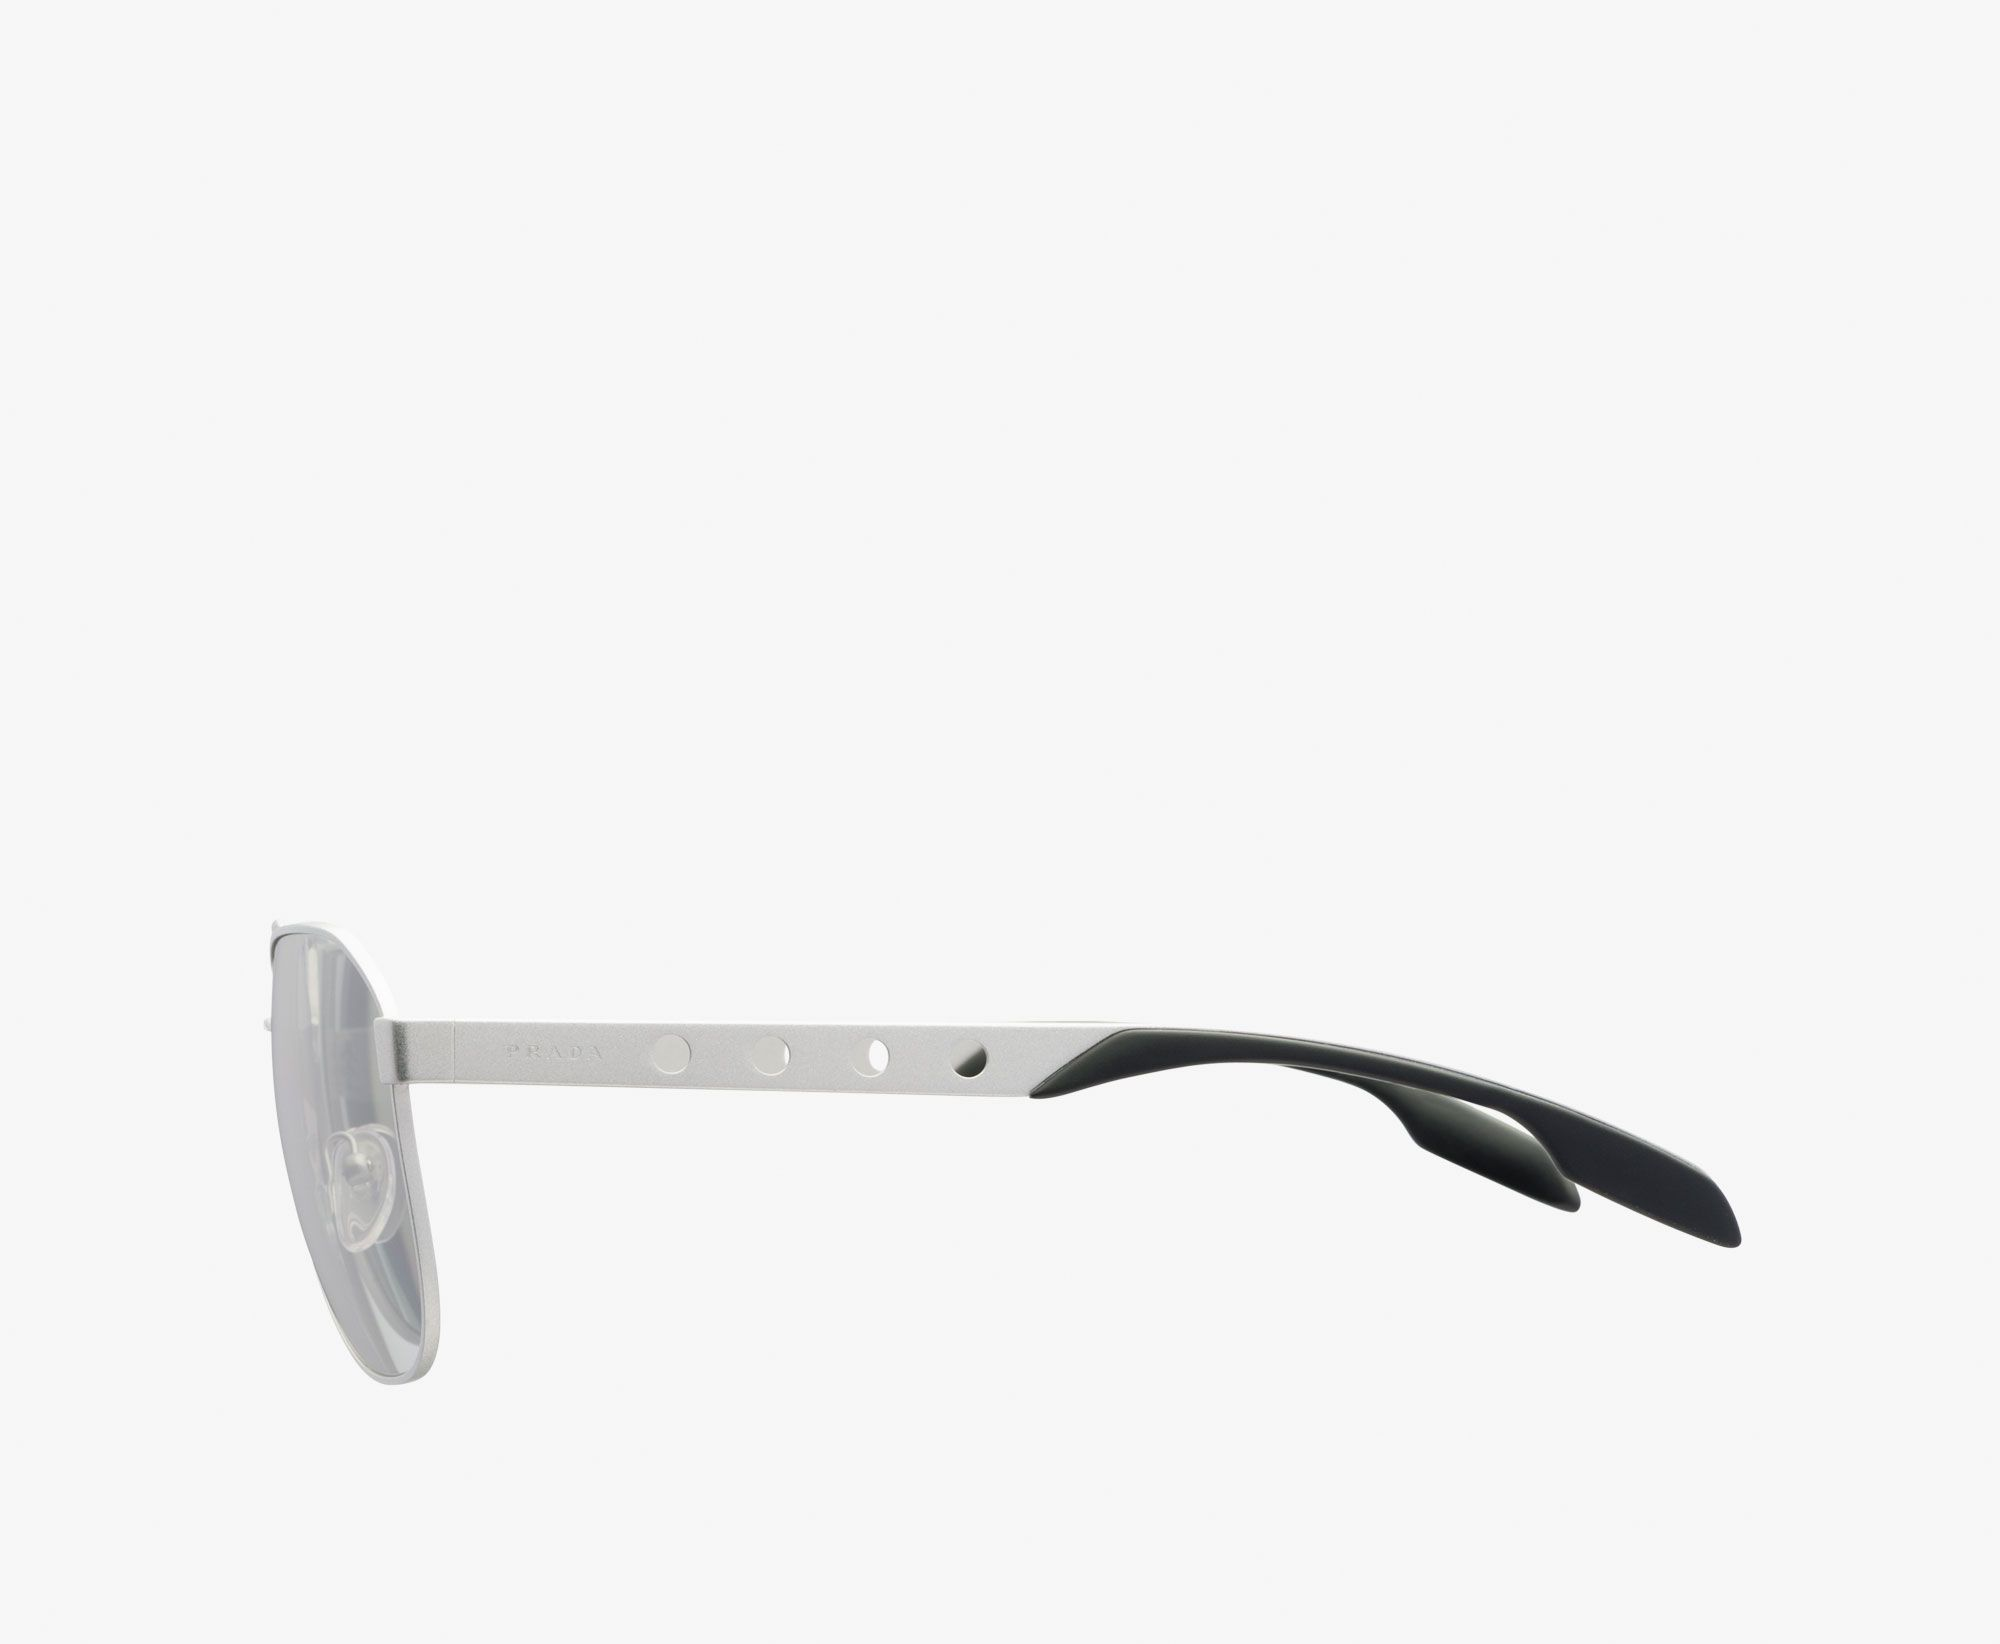 Prada Man Eyewear in Mirror-finish gray lenses $325. Side view. Code: